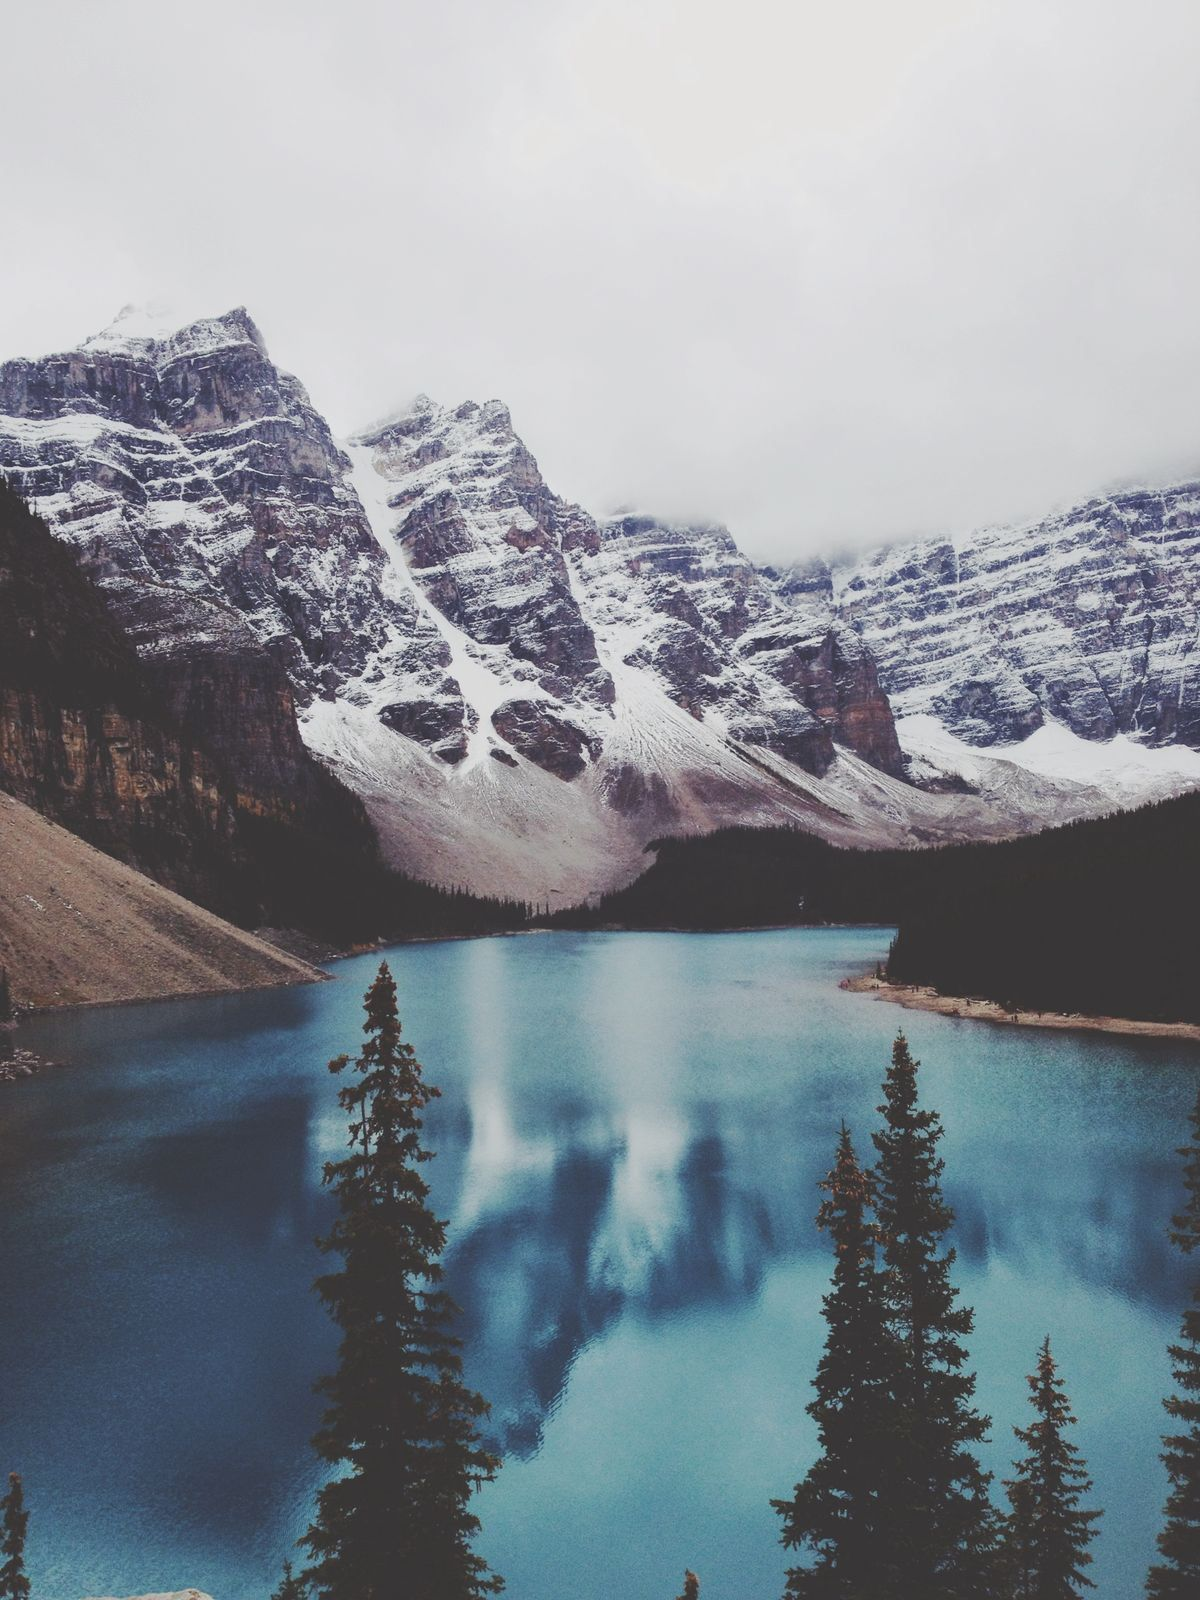 Pinterest : @selenaperm12 . .♡ | Scenery, Rocky mountains canada, The great outdoors